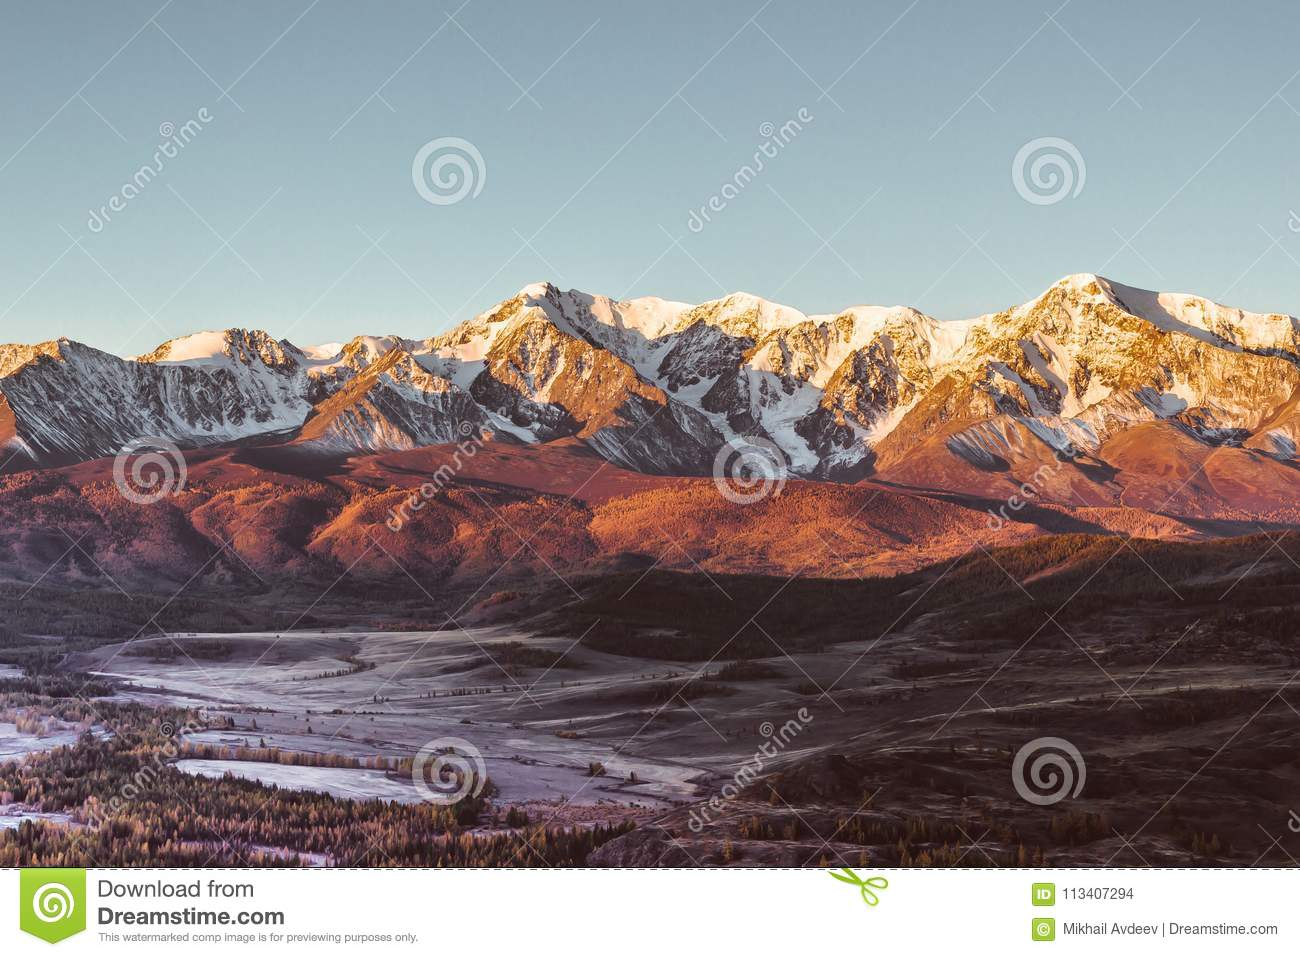 The views of the snowy peaks and the river valley at dawn.